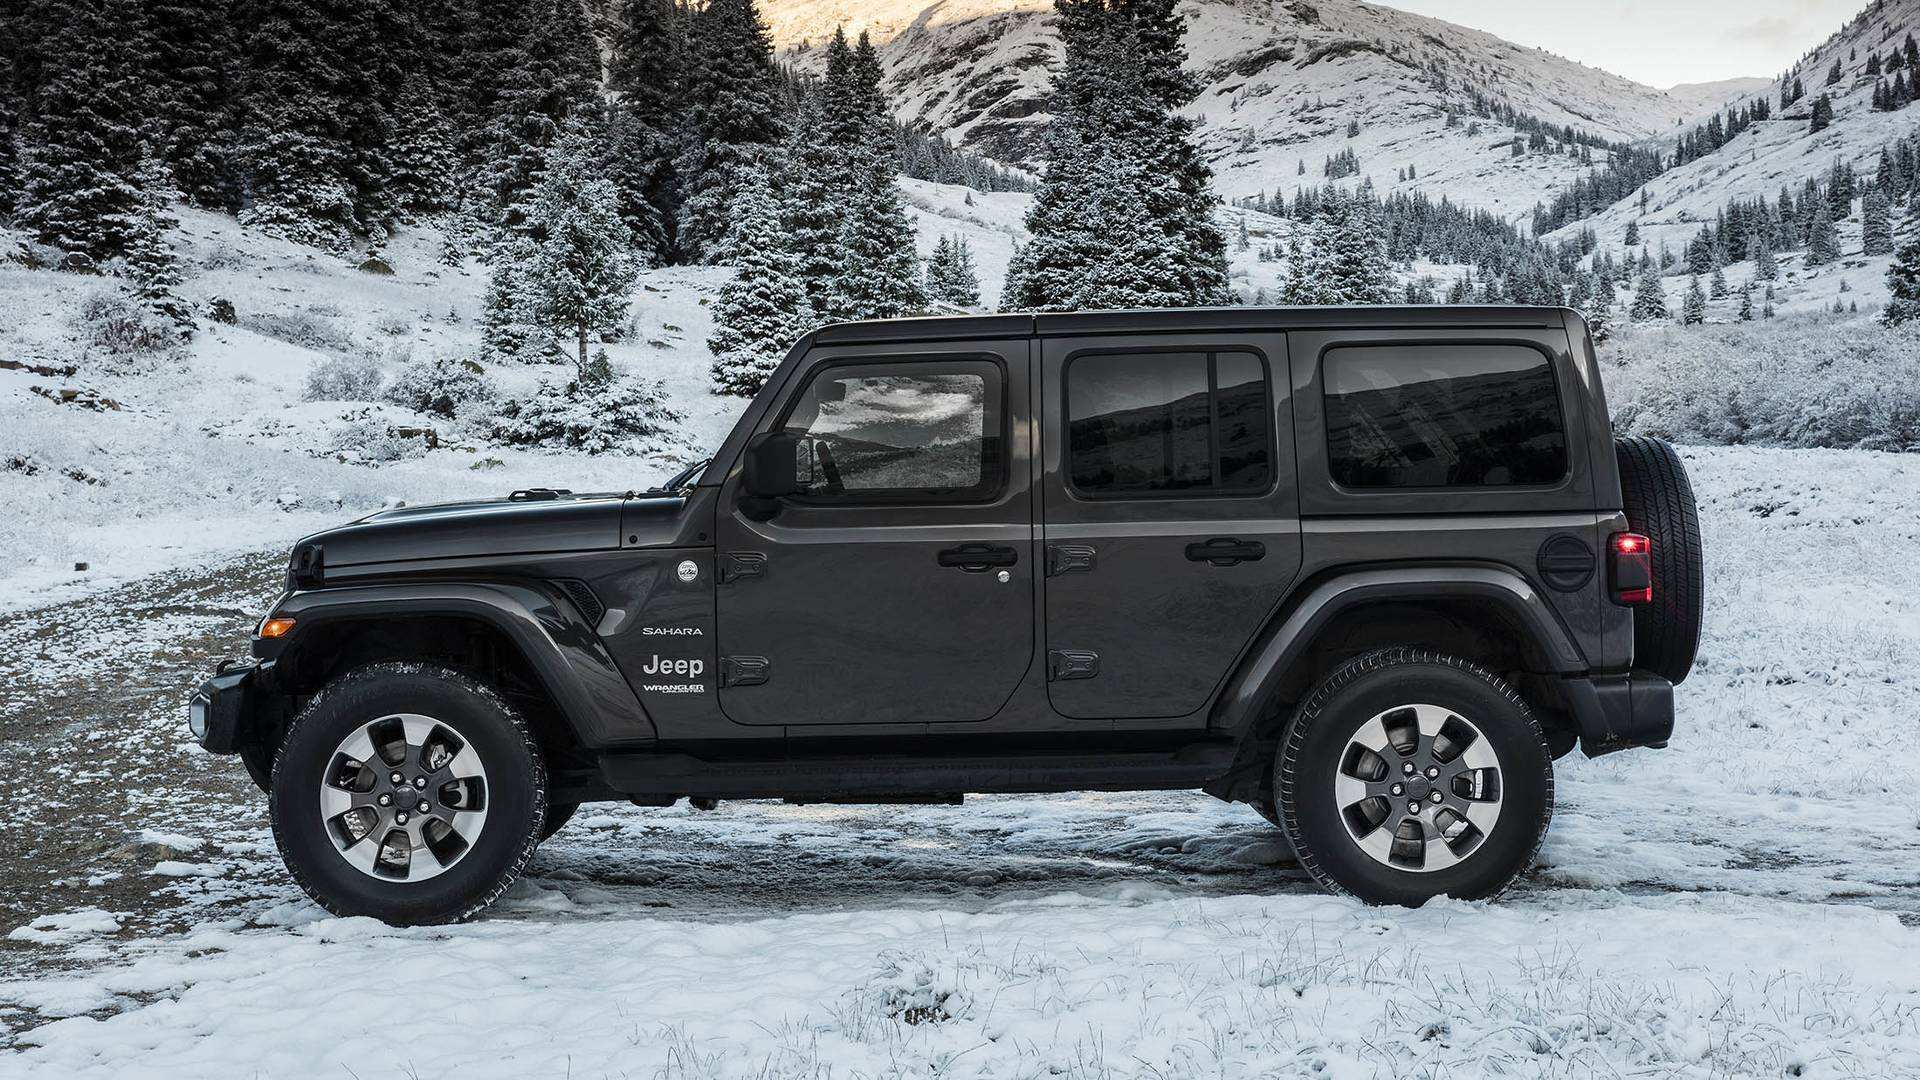 85 A 2020 Jeep Wrangler Plug In Hybrid Concept And Review